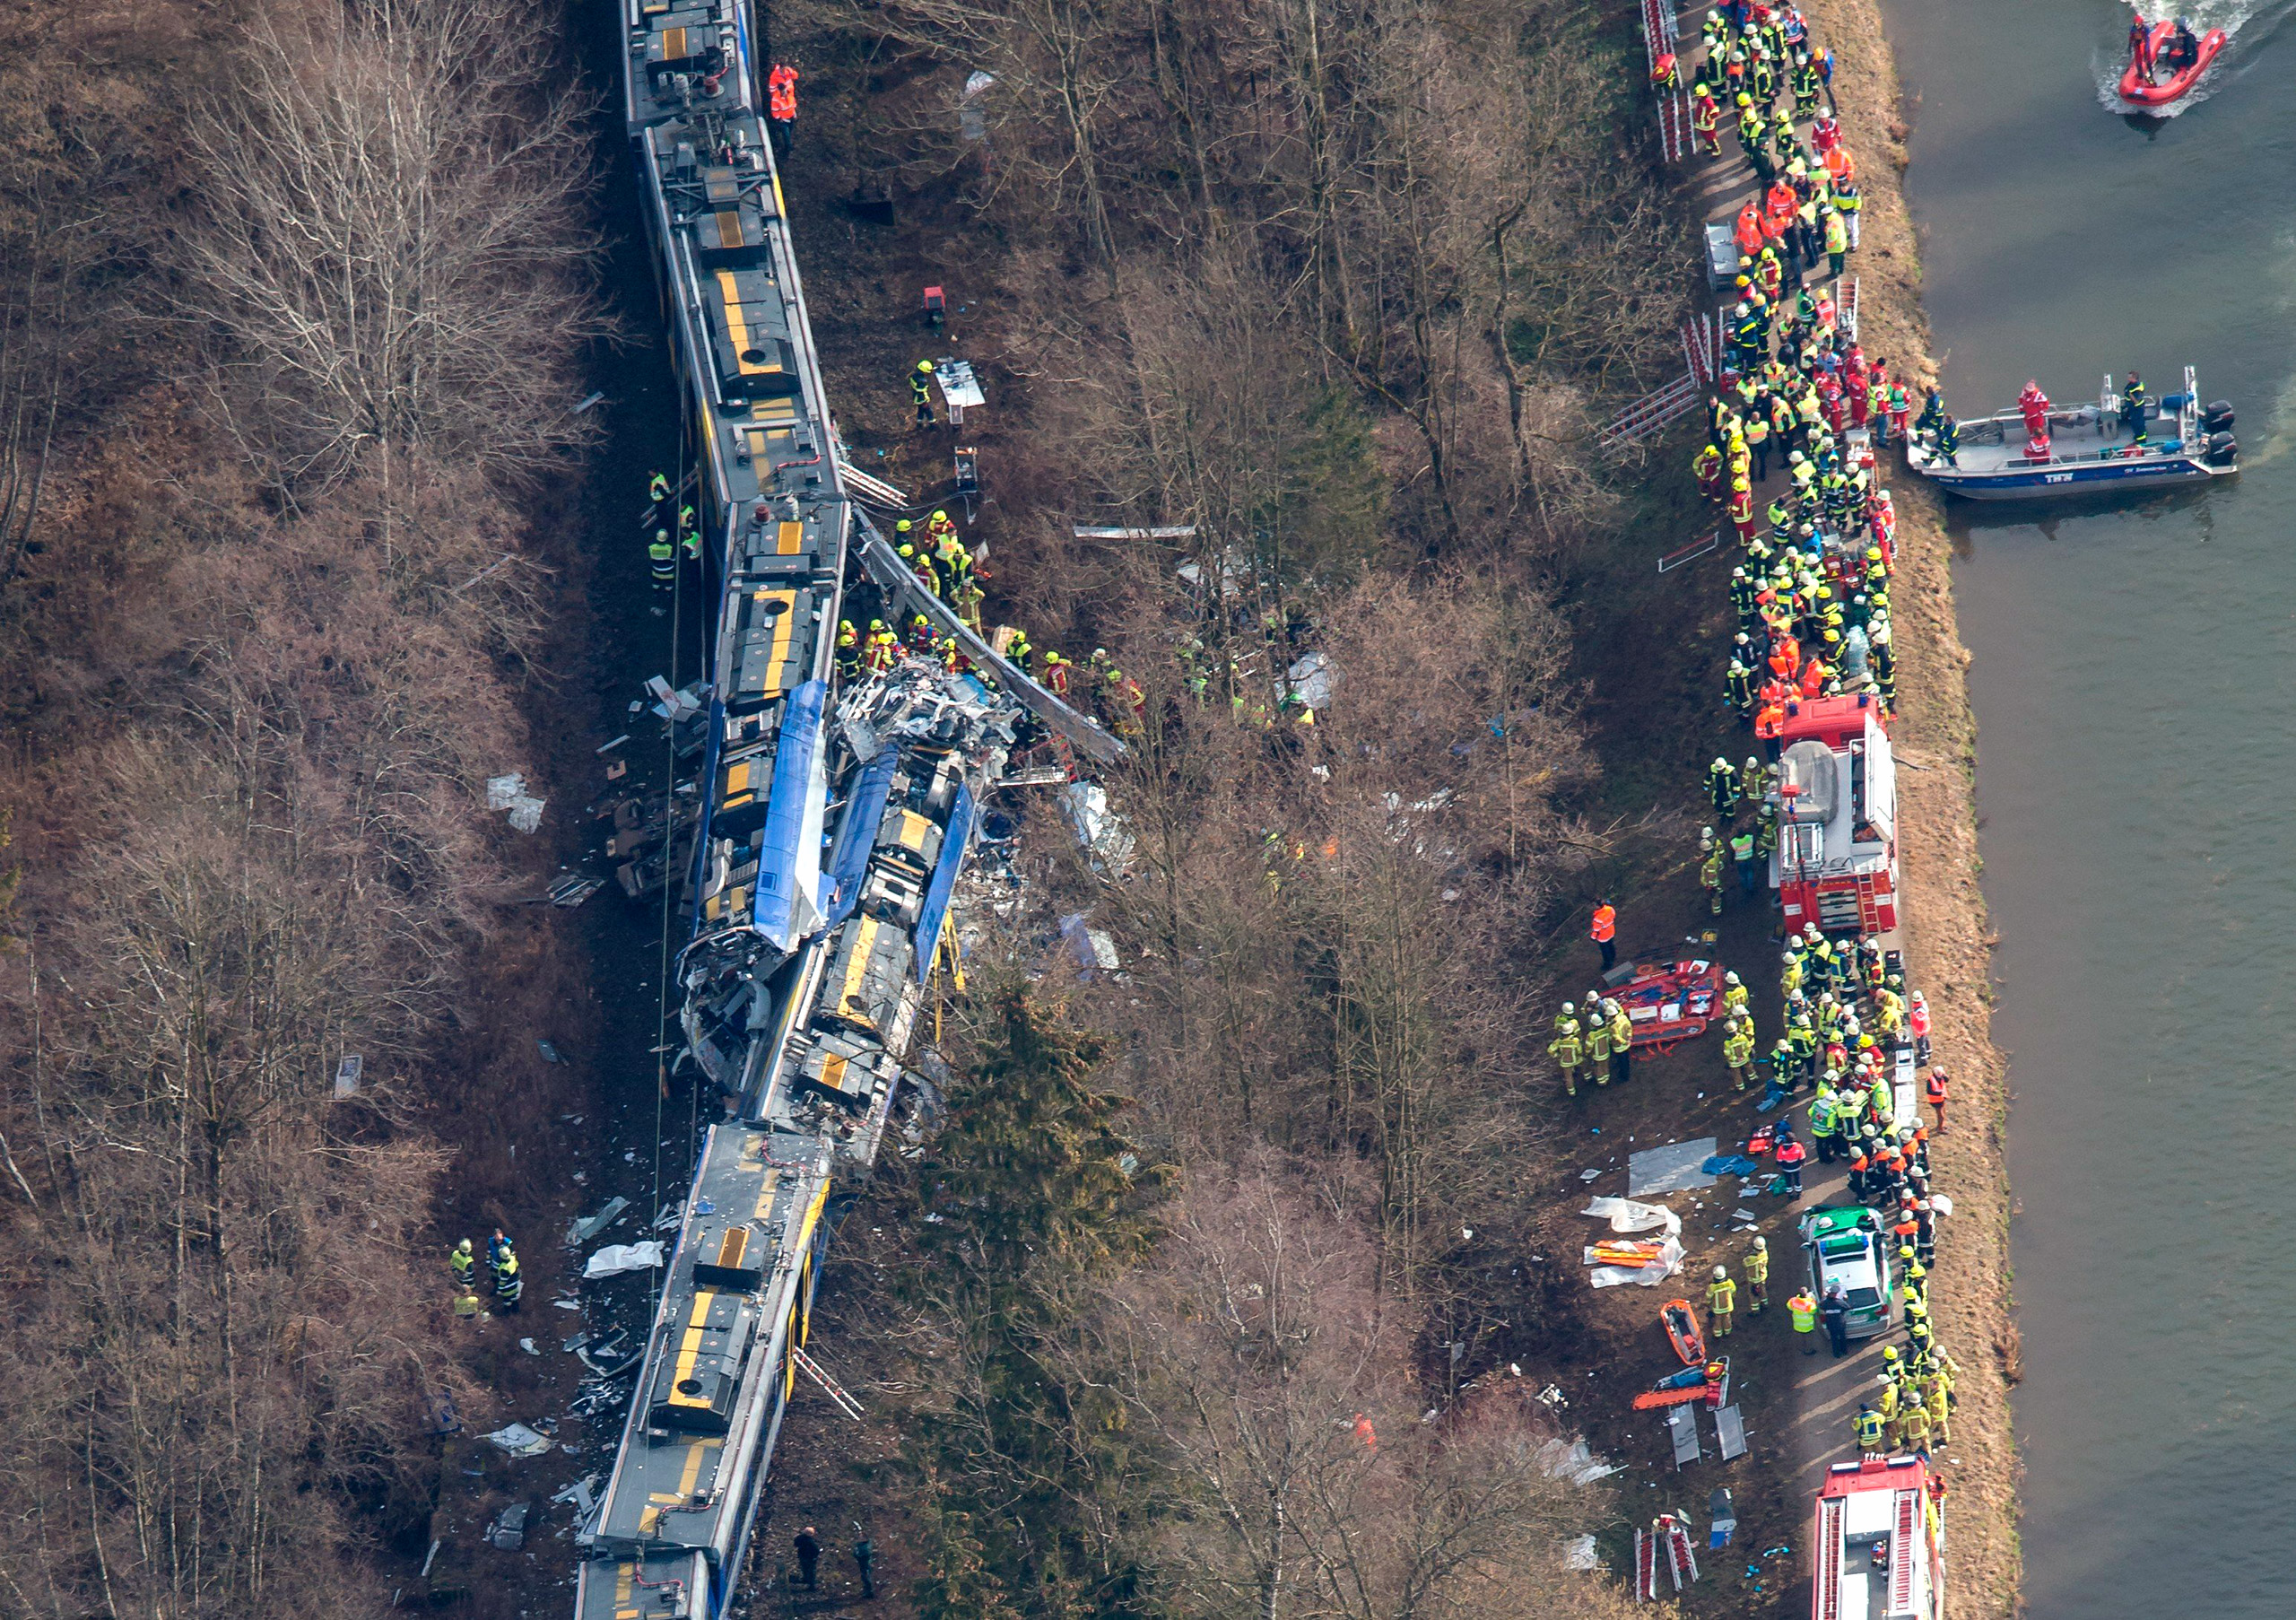 An aerial view of rescuers working at the site of a train accident near Bad Aibling, Germany, Feb. 9, 2016.